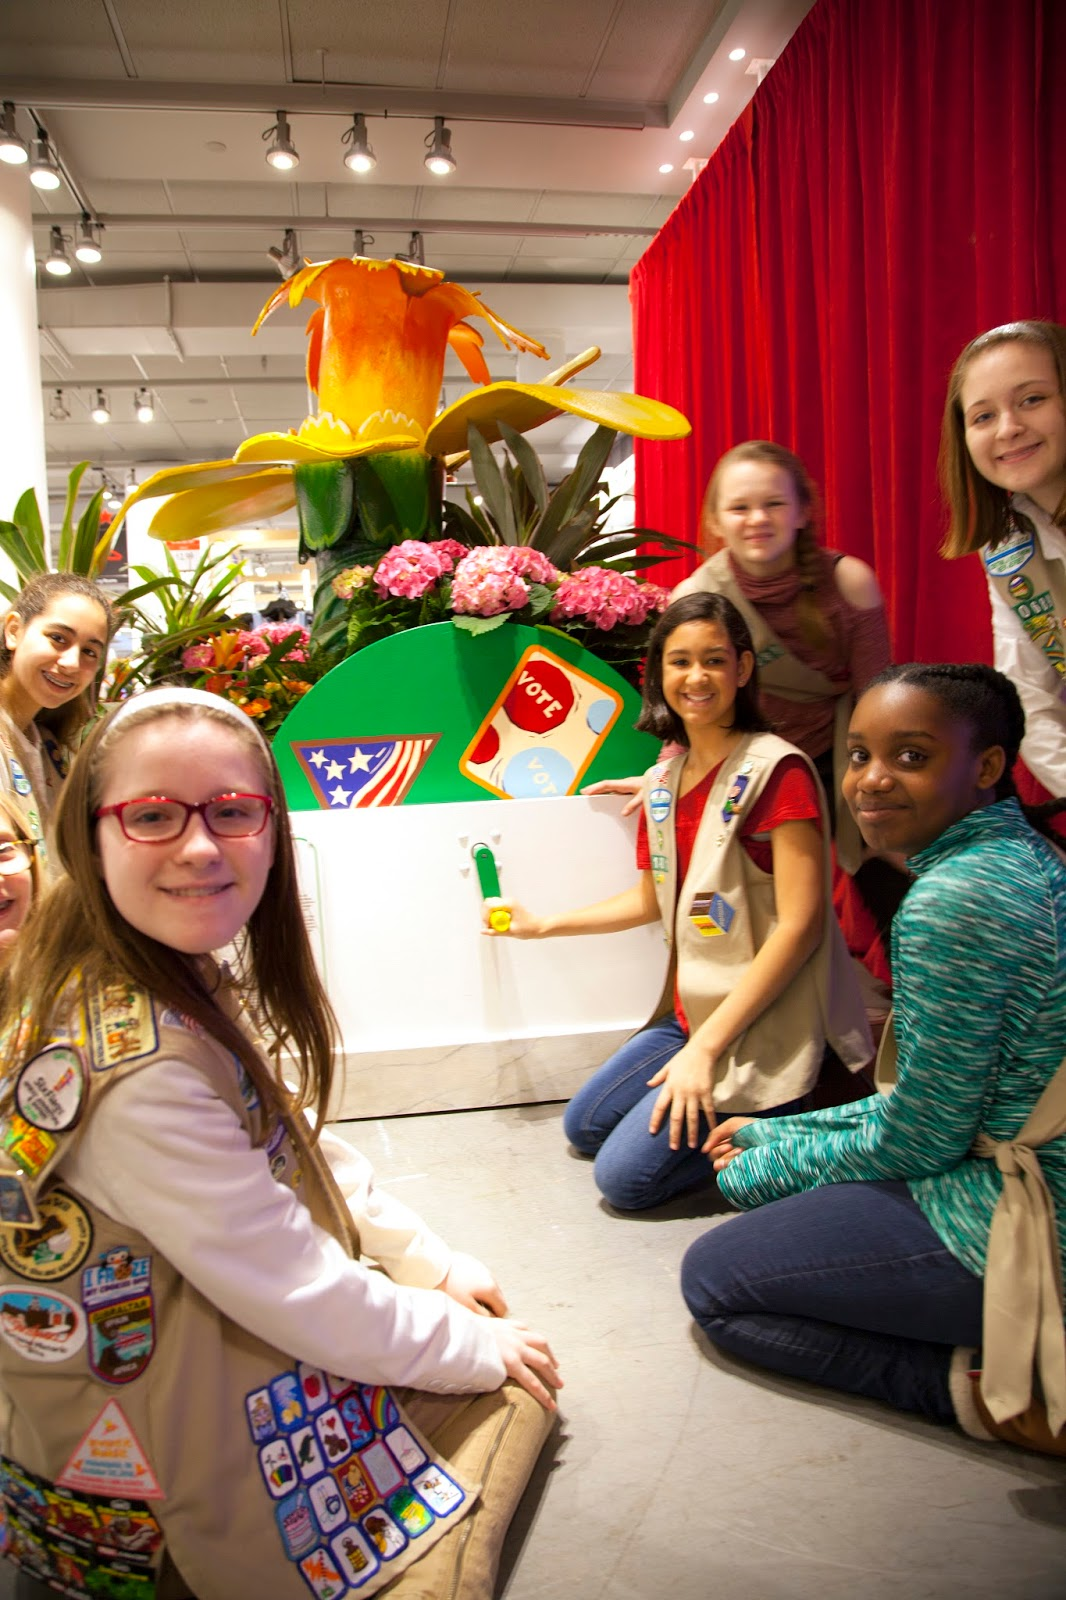 Girl Scout Cookie Nail Art: Badges Are In Bloom At The Macy's Flower Show